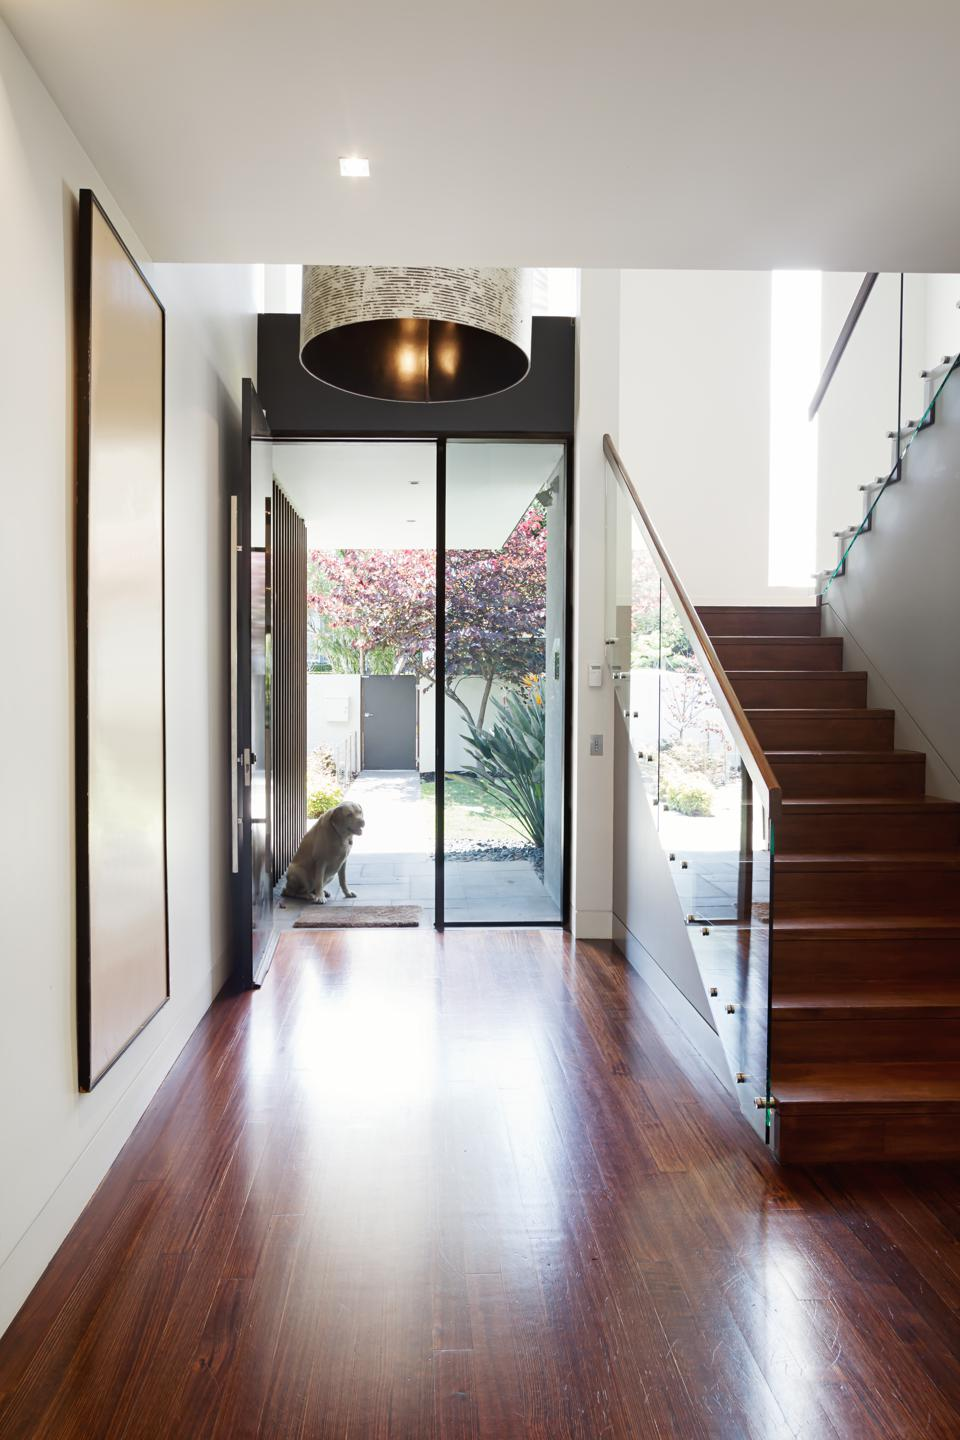 Entry foyer of architect designed modern Australian home with wooden floor